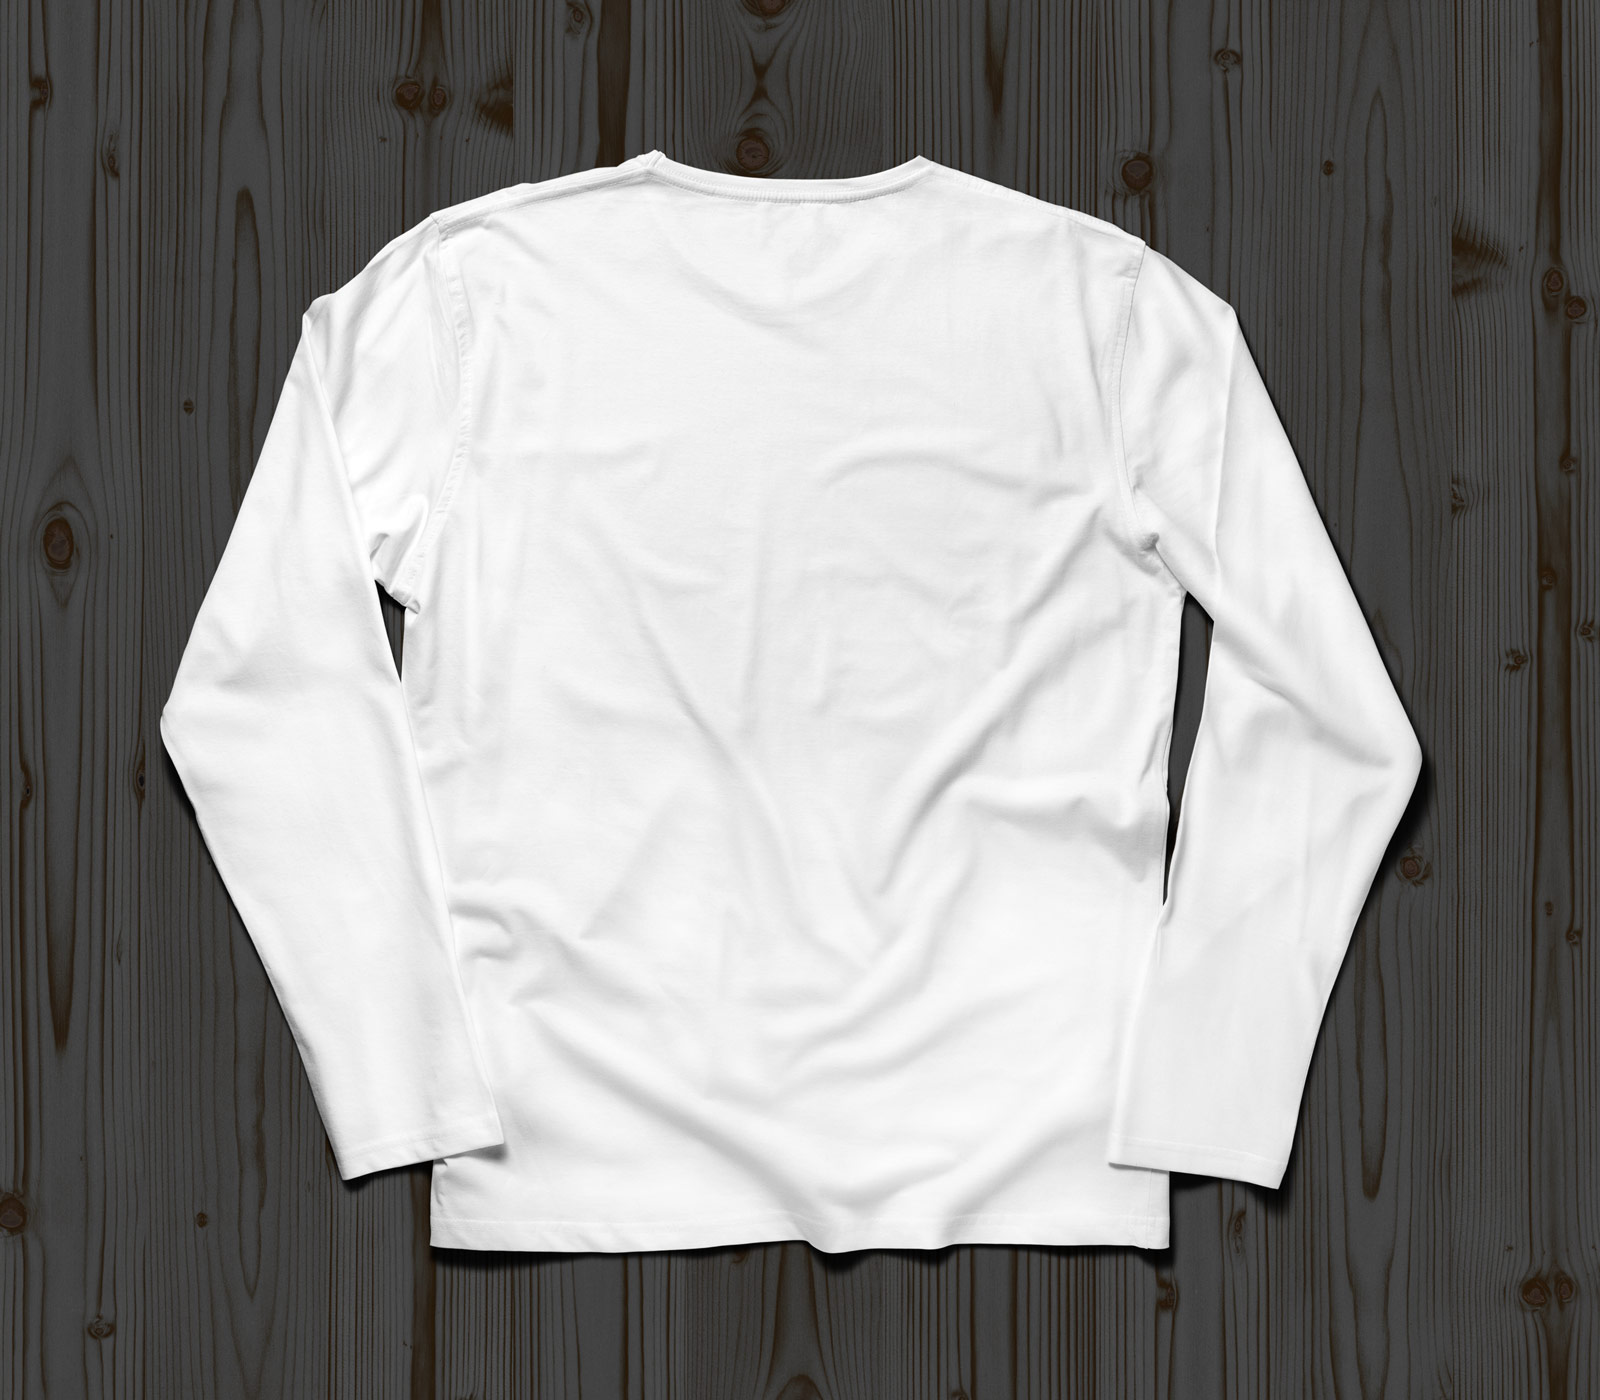 Free full sleeves t shirt mockup psd front back good for Free t shirt mockups